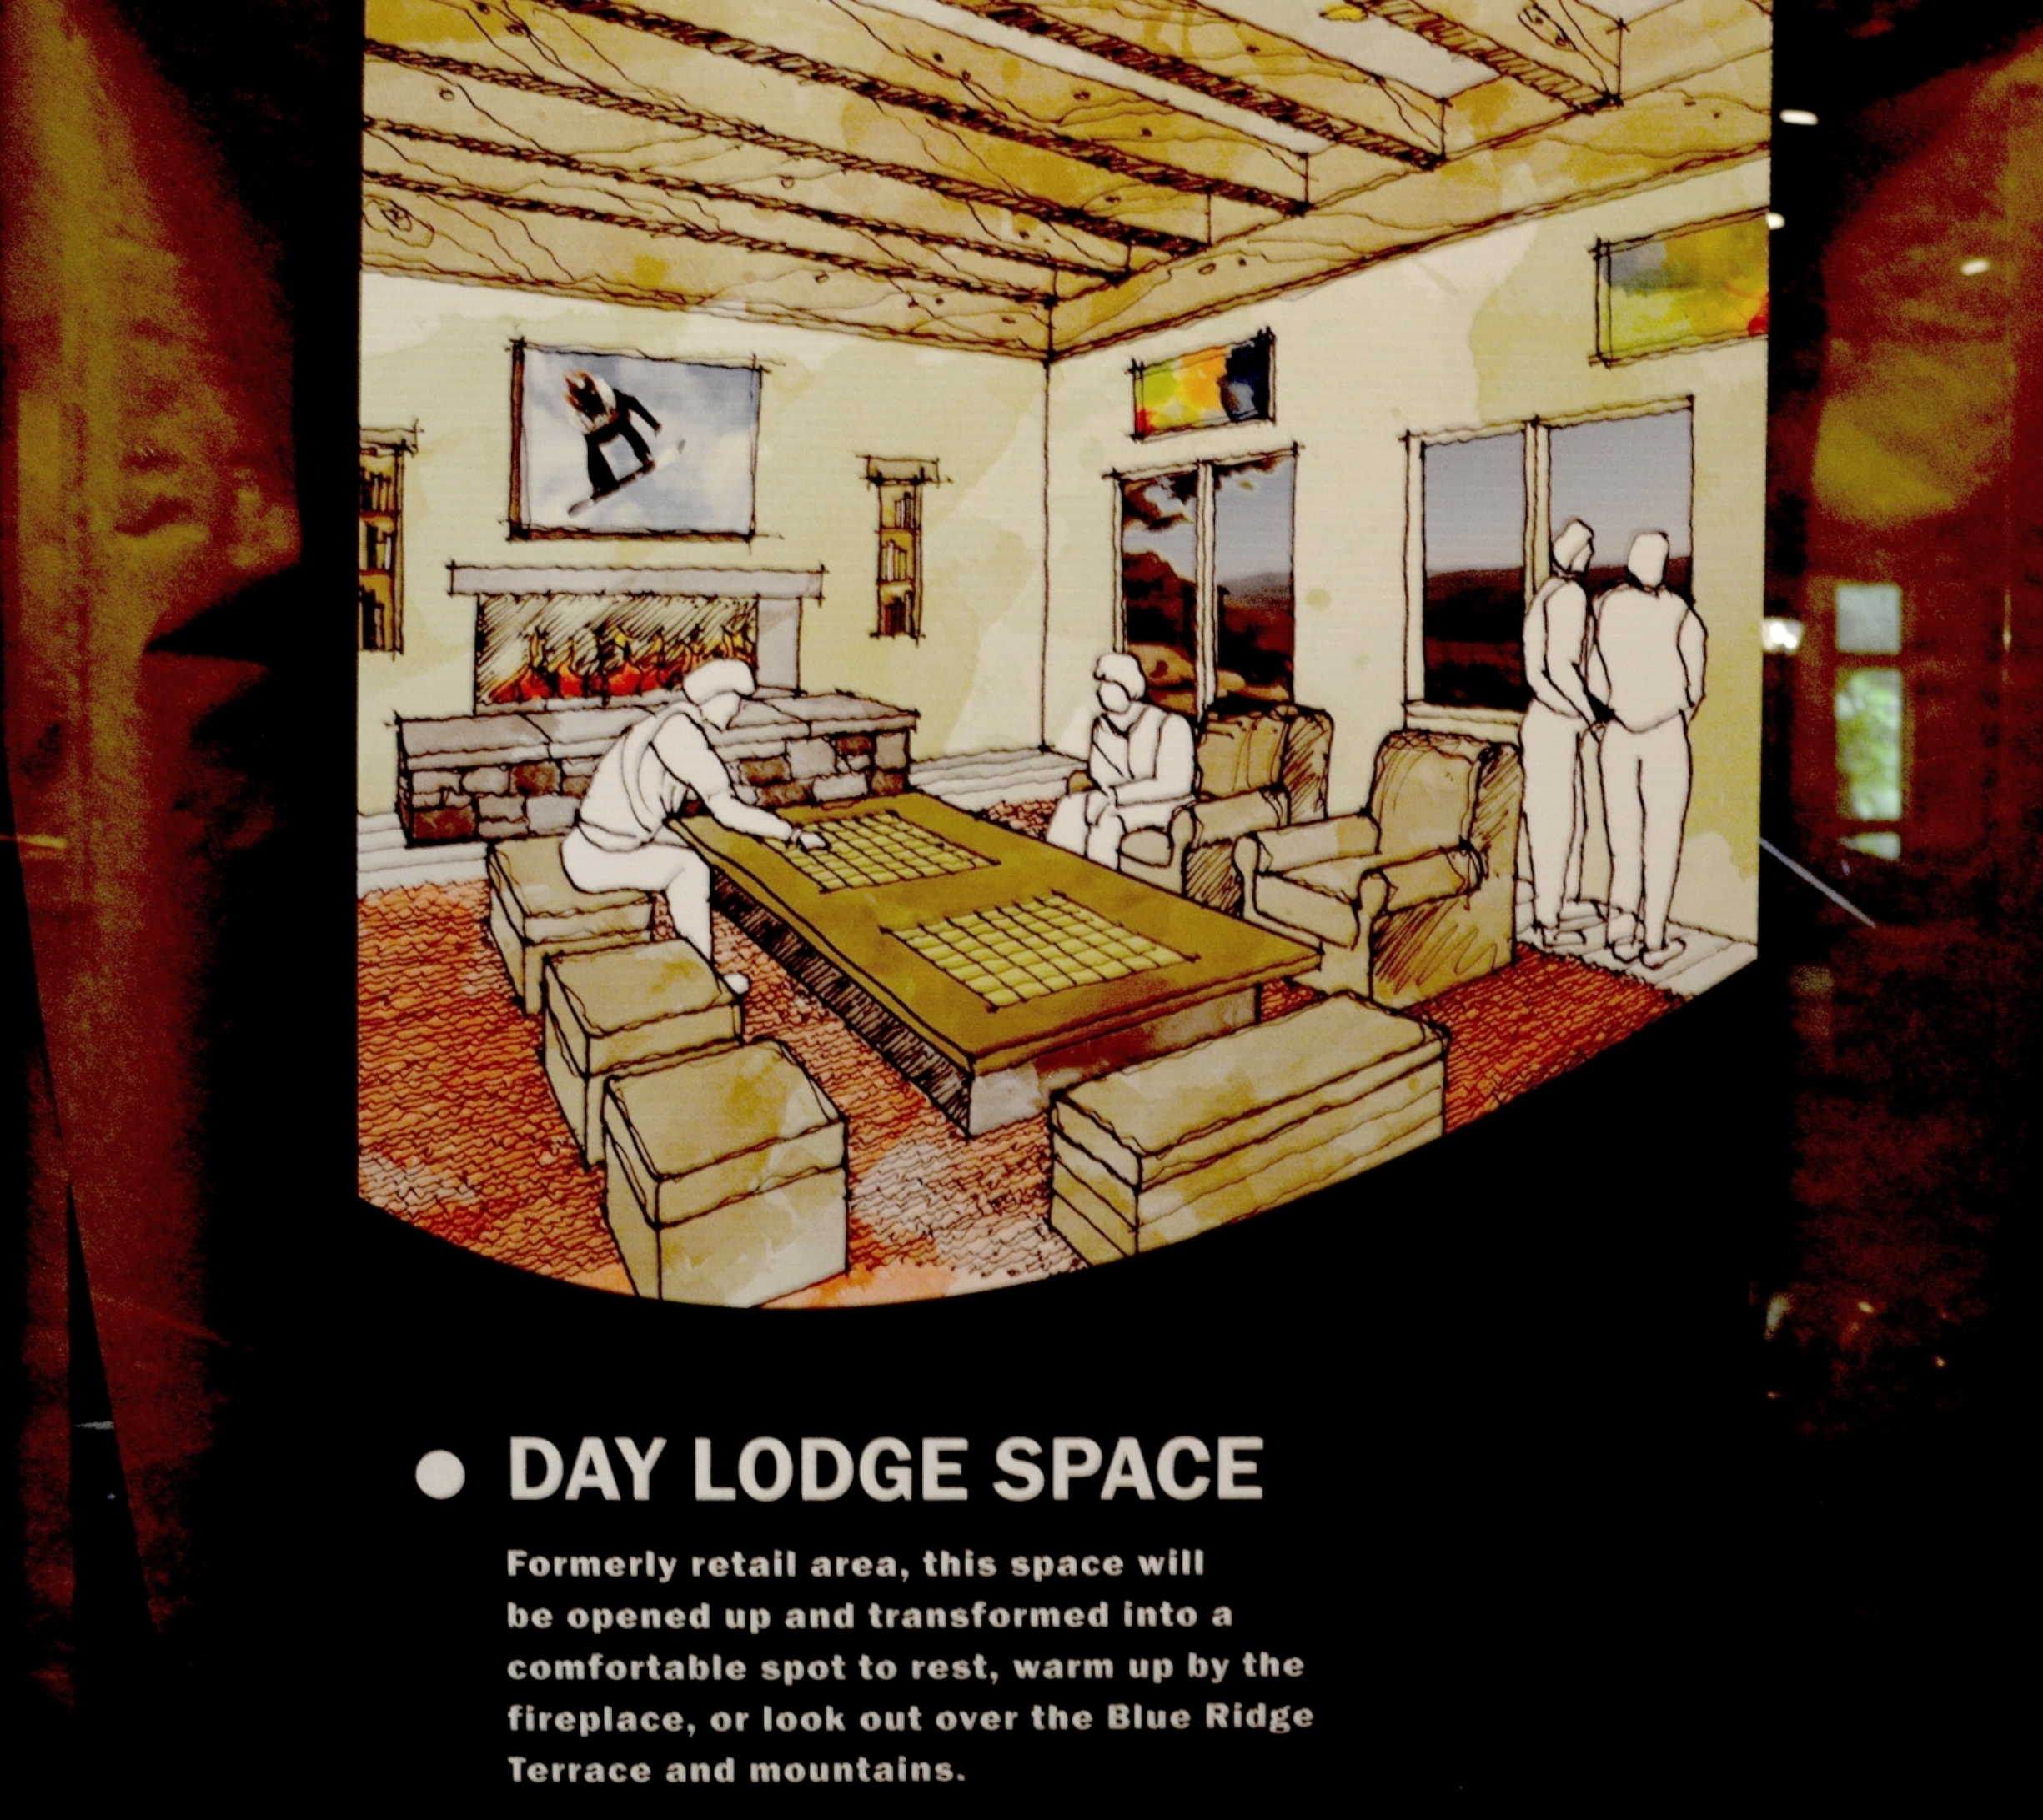 day lodge space poster 3.JPG